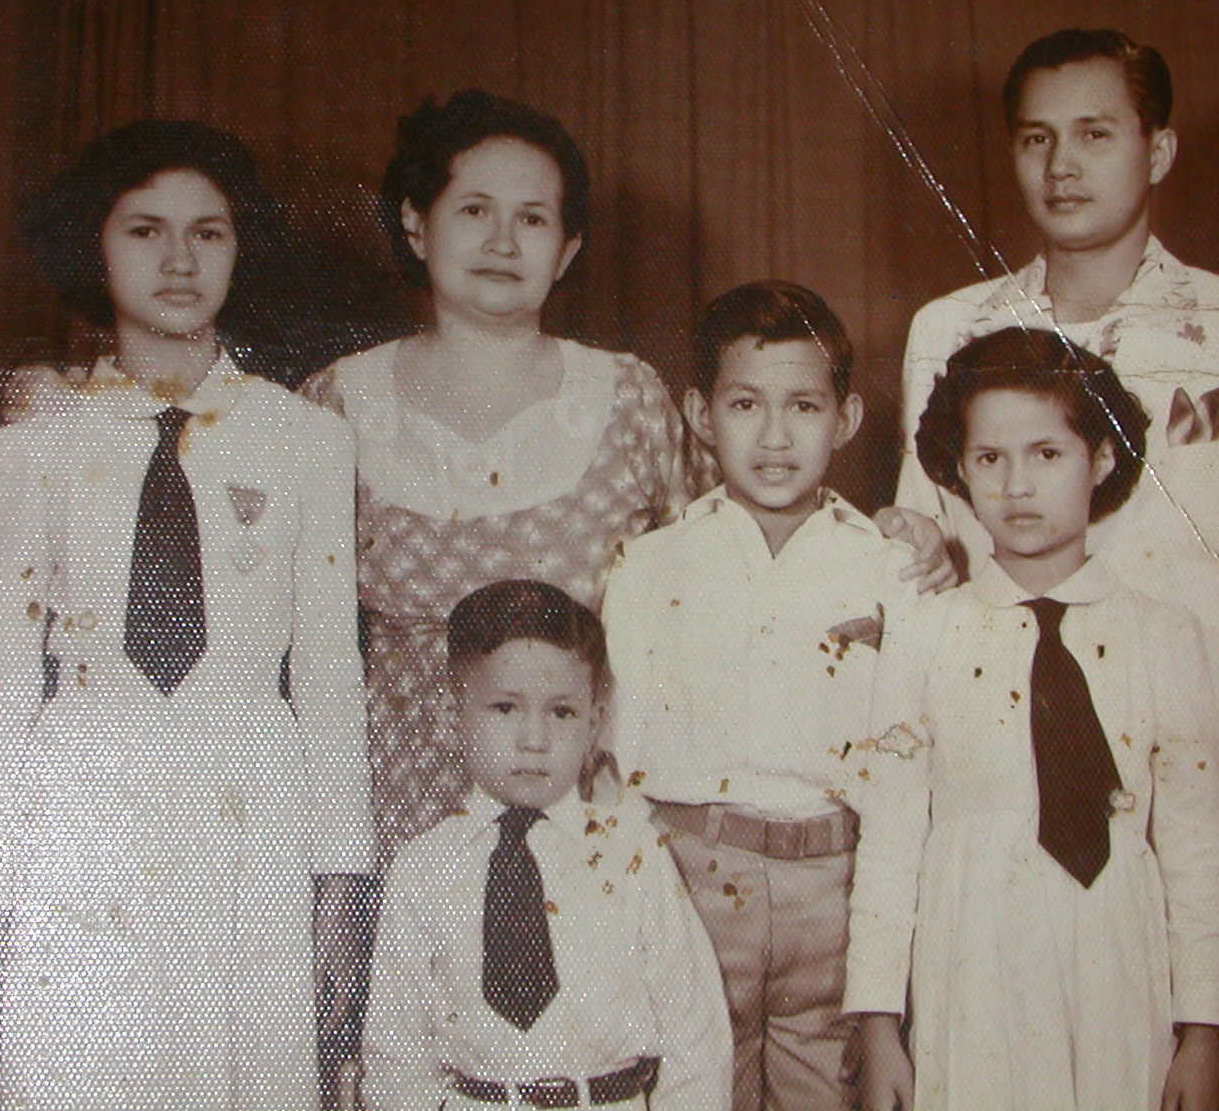 An old family portrait of the Diosos from 1953, from left: Maria, Rosario, Leo, Tita, Leocadio Sr. Front: Jose (Joe)  (Courtesy of Dioso family)